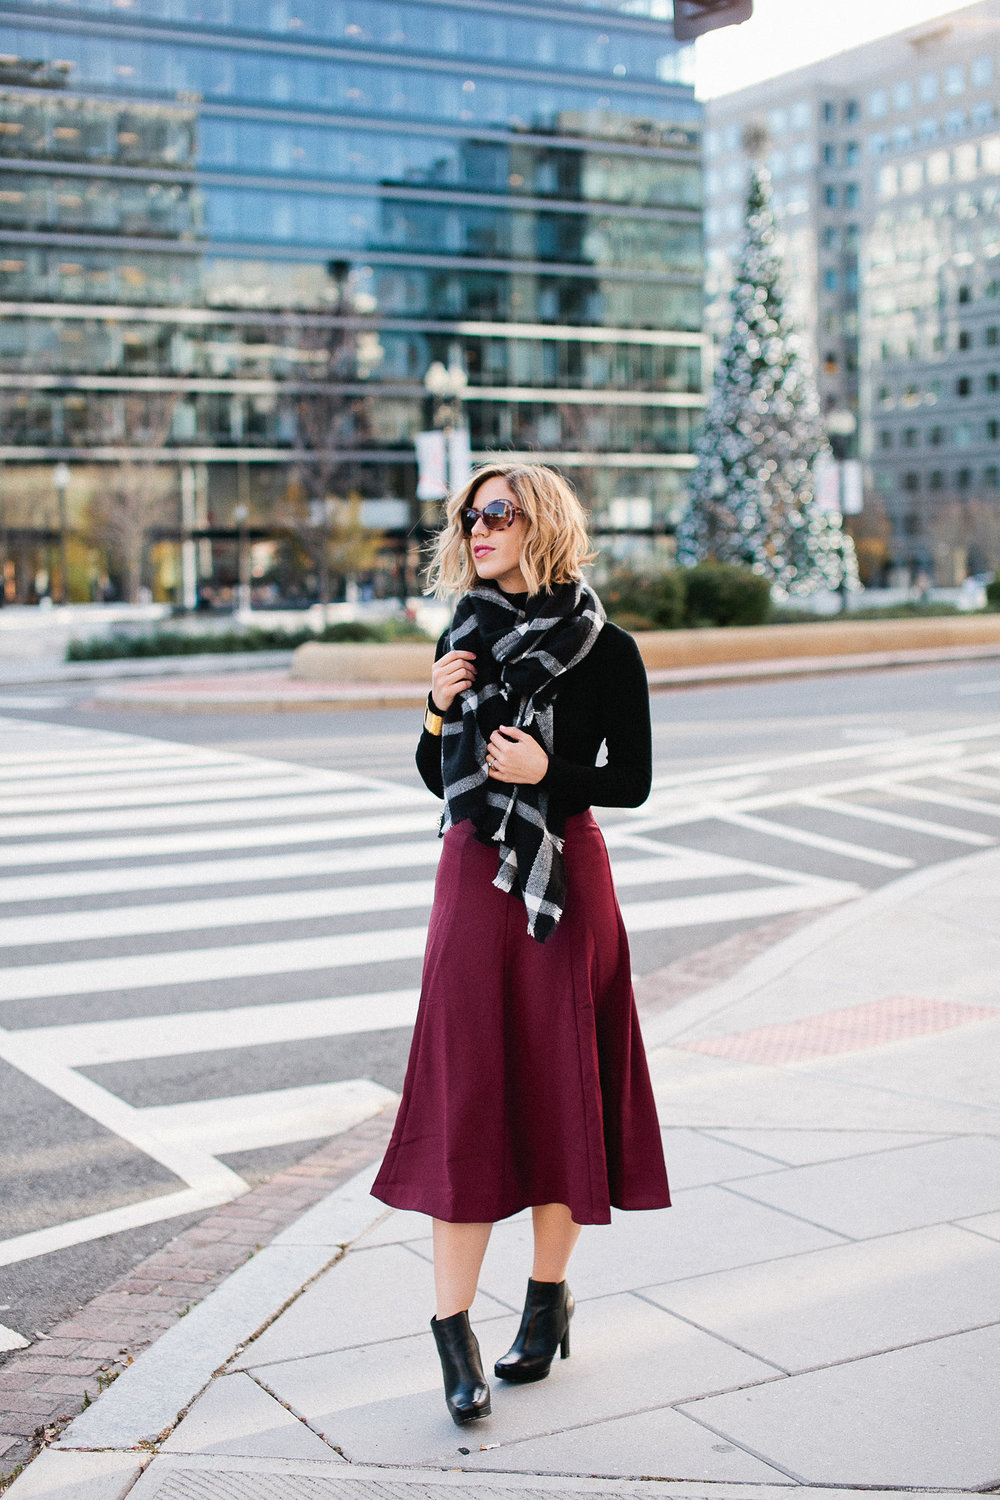 Burgundy skirt +turtleneck + platform boots  (see full outfit post here!)